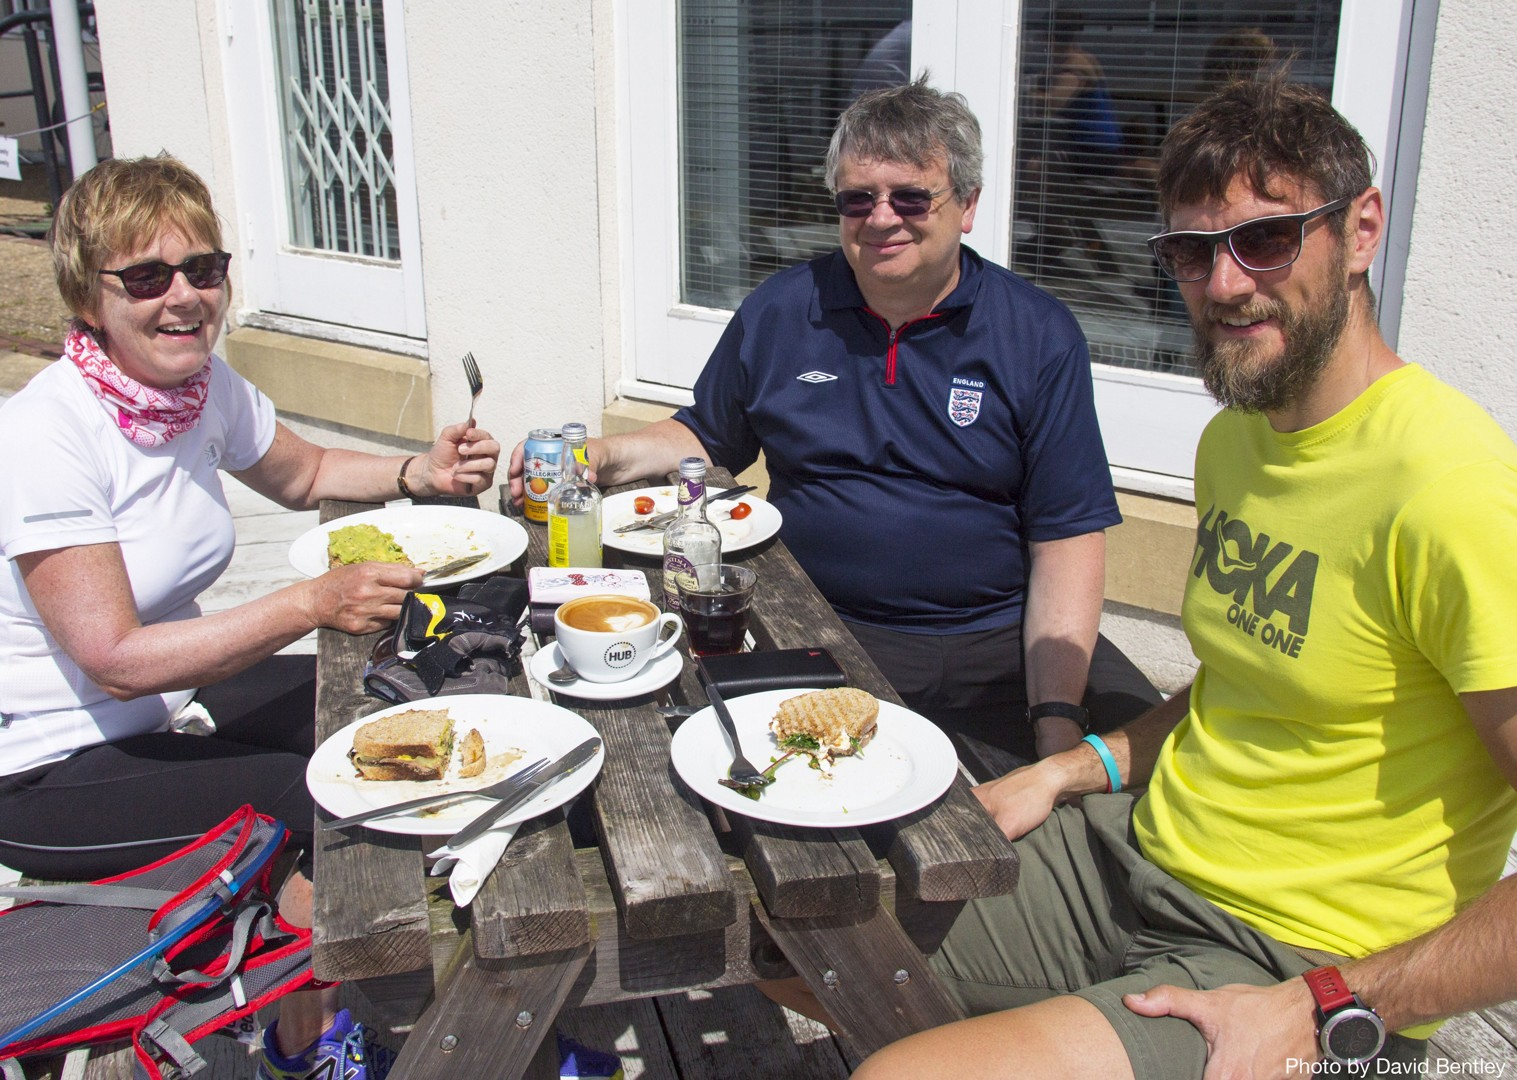 Self-Guided-Leisure-Cycling-Holiday-Hadrians-Cycleway-UK-lunch-break.jpg - UK - Hadrian's Cycleway - 6 Days Cycling - Self-Guided Leisure Cycling Holiday - Leisure Cycling